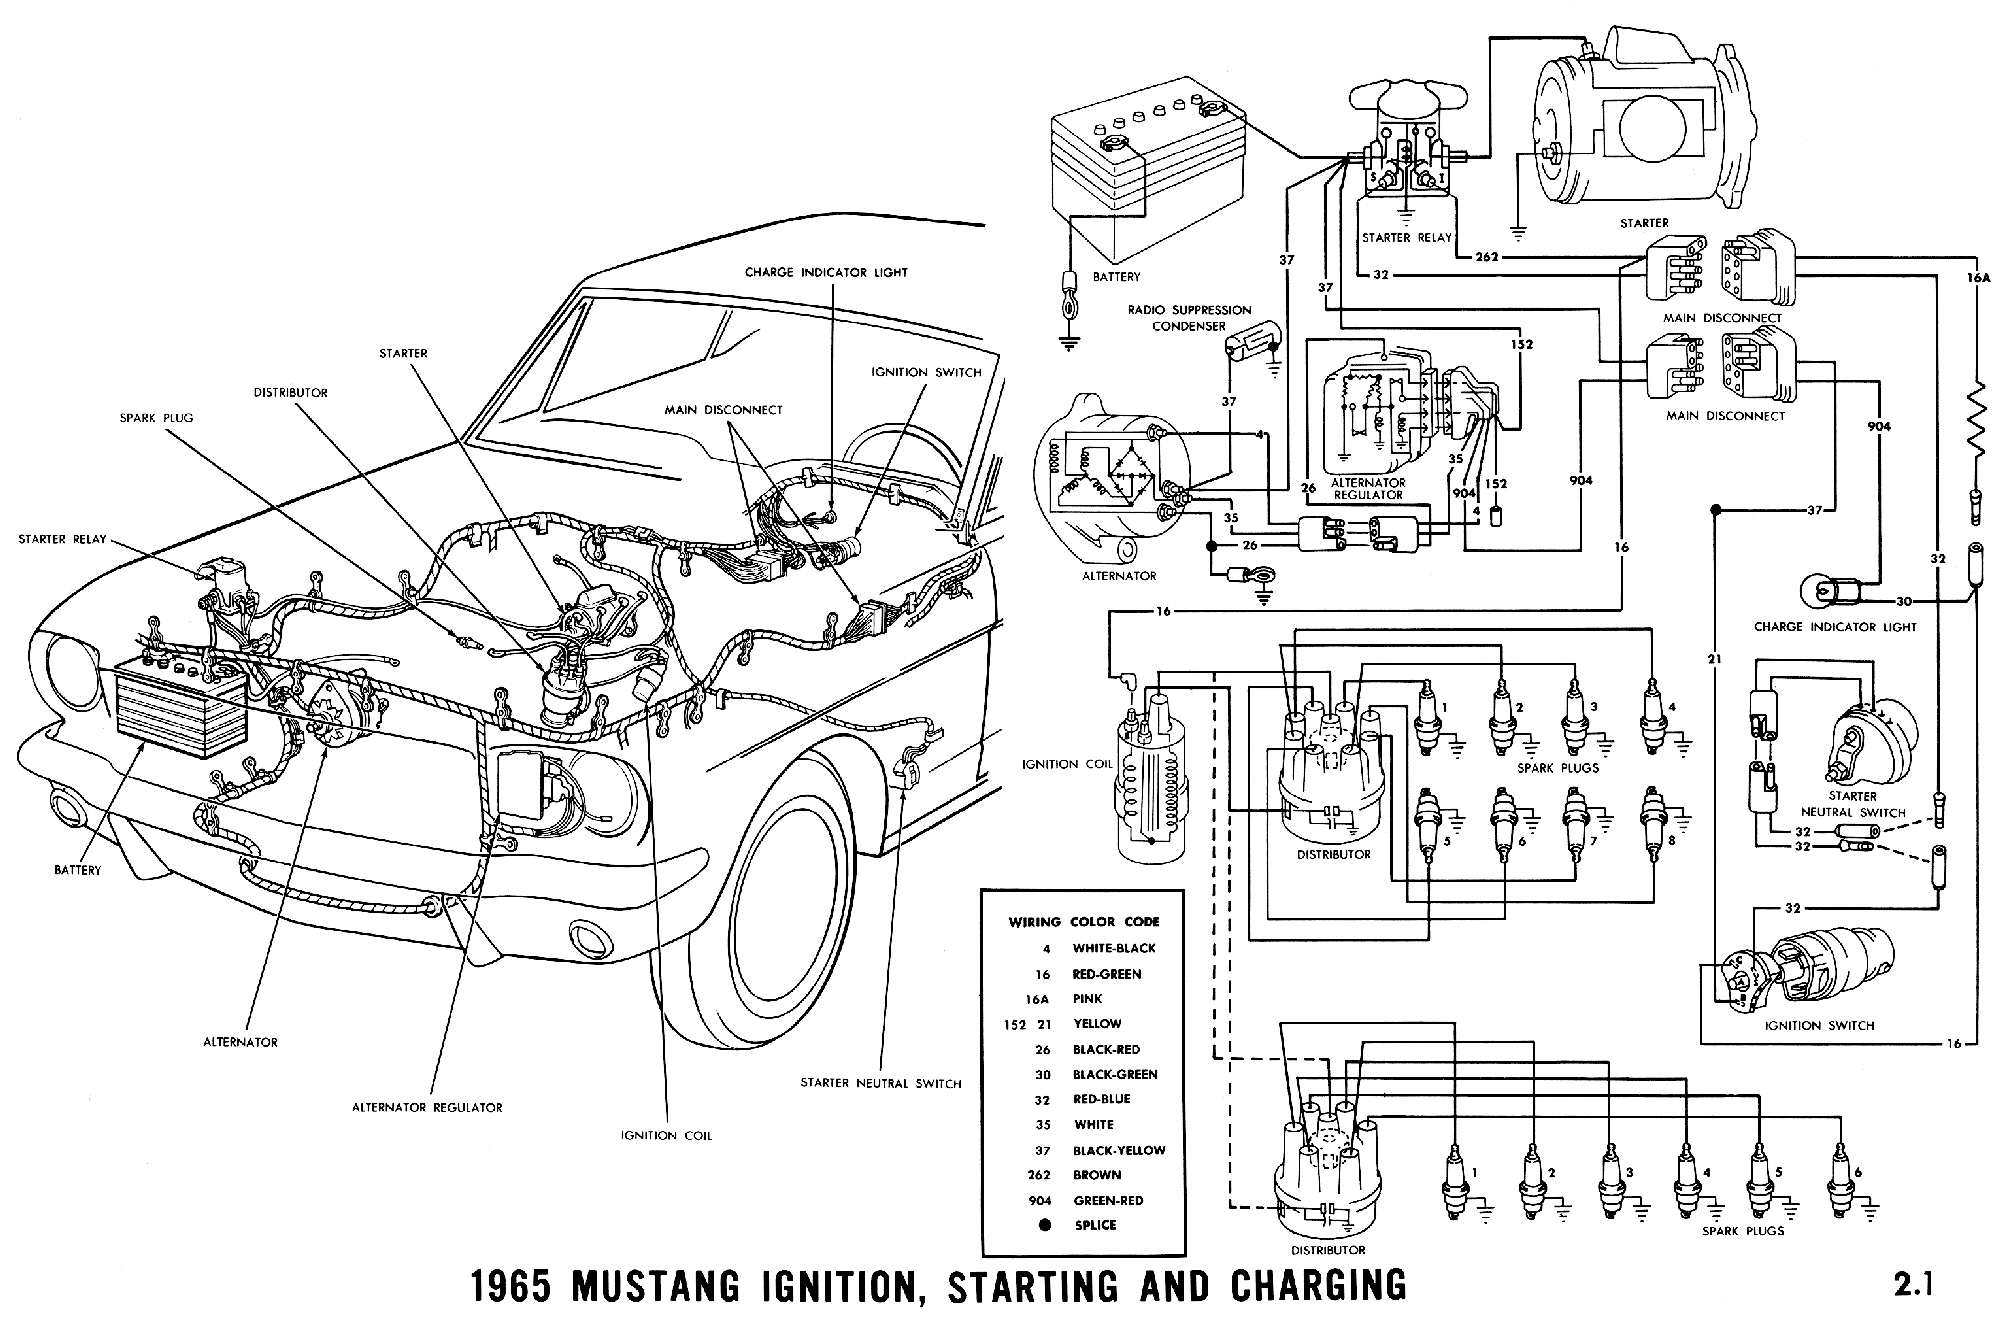 hight resolution of 1965 mustang wiring diagrams average joe restoration 1965 mustang dash wiring diagram alternator wiring diagram for 1965 mustang